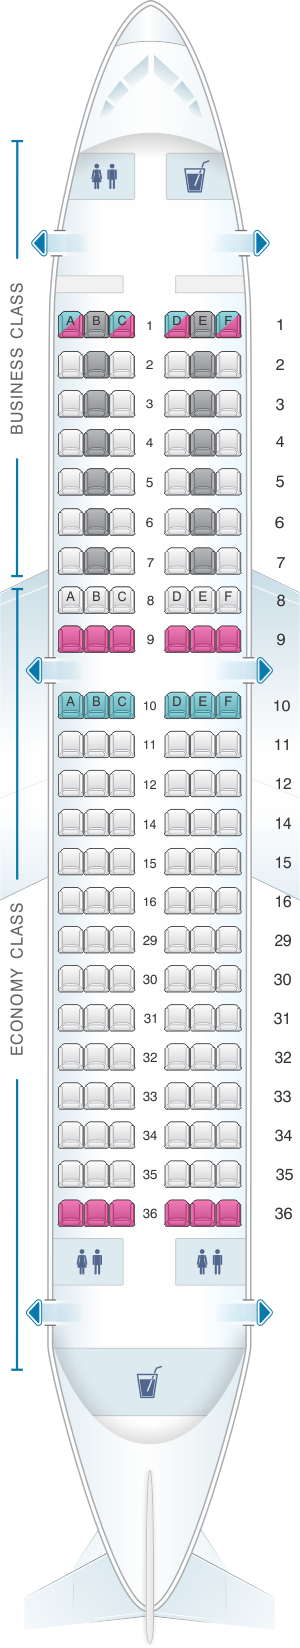 Seat map for SWISS Airbus A319 112